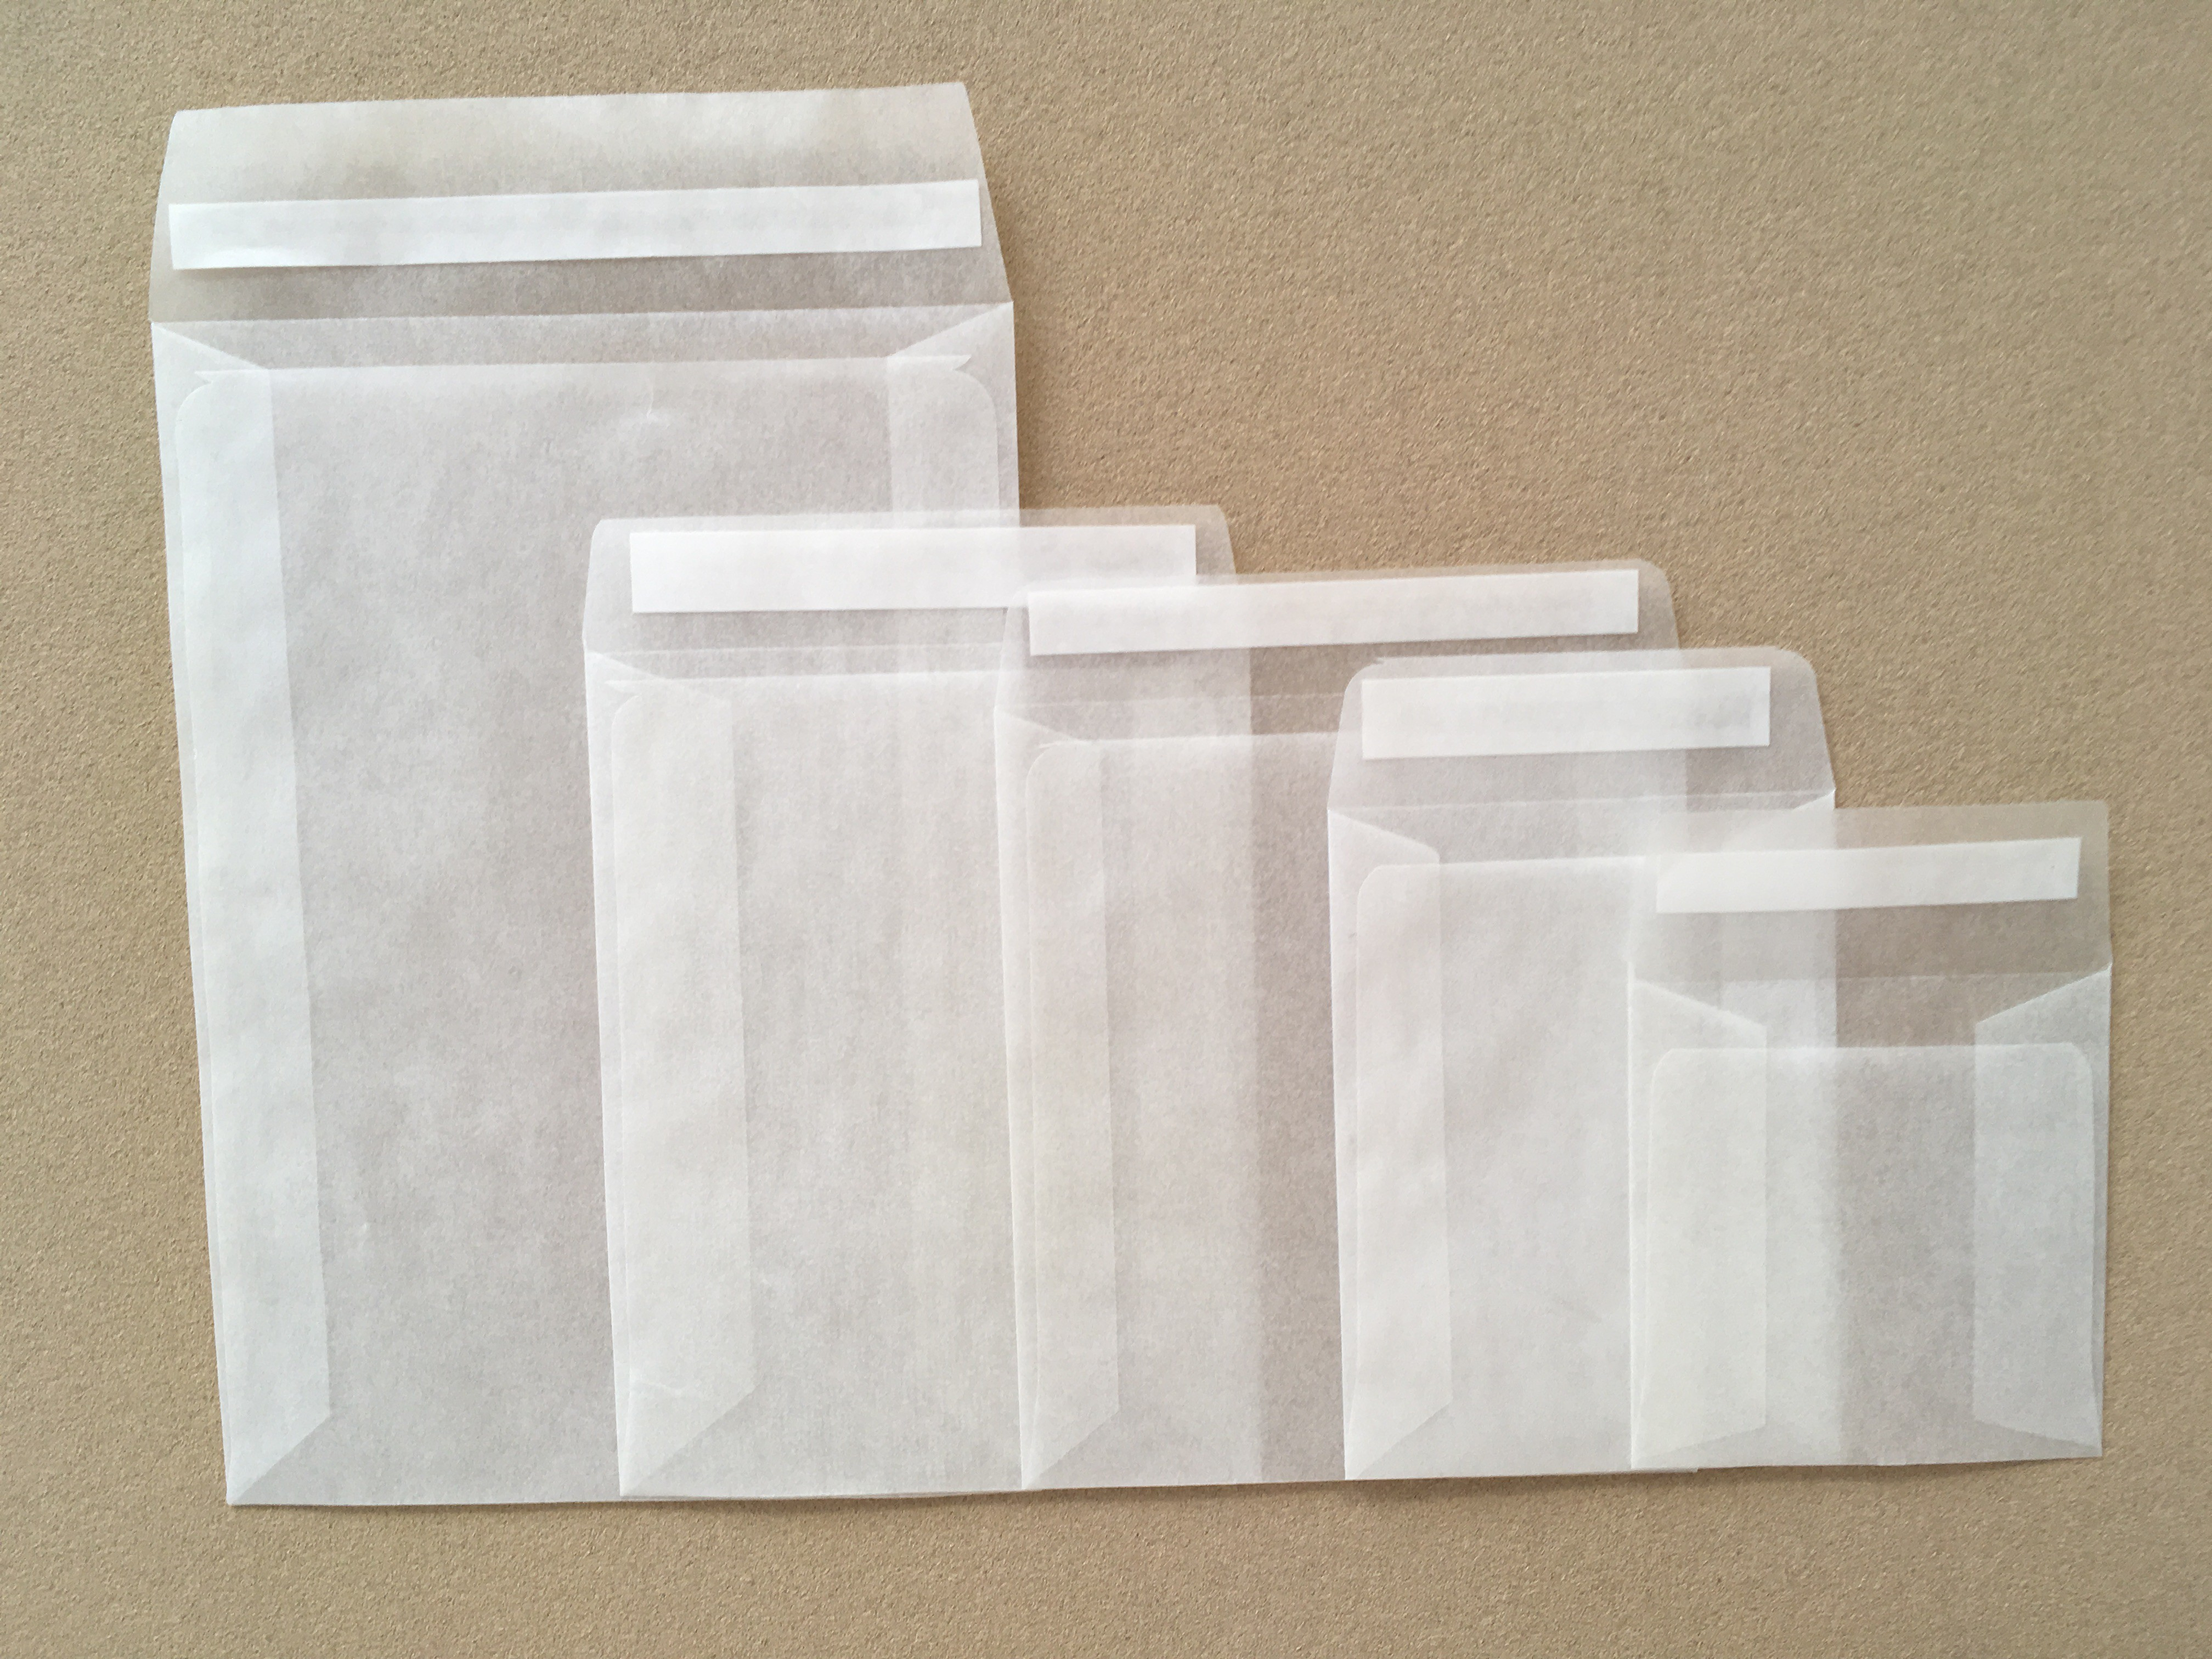 108mm x 92mm Glassine Peel and Seal Envelope Bags [Pack of 1000]